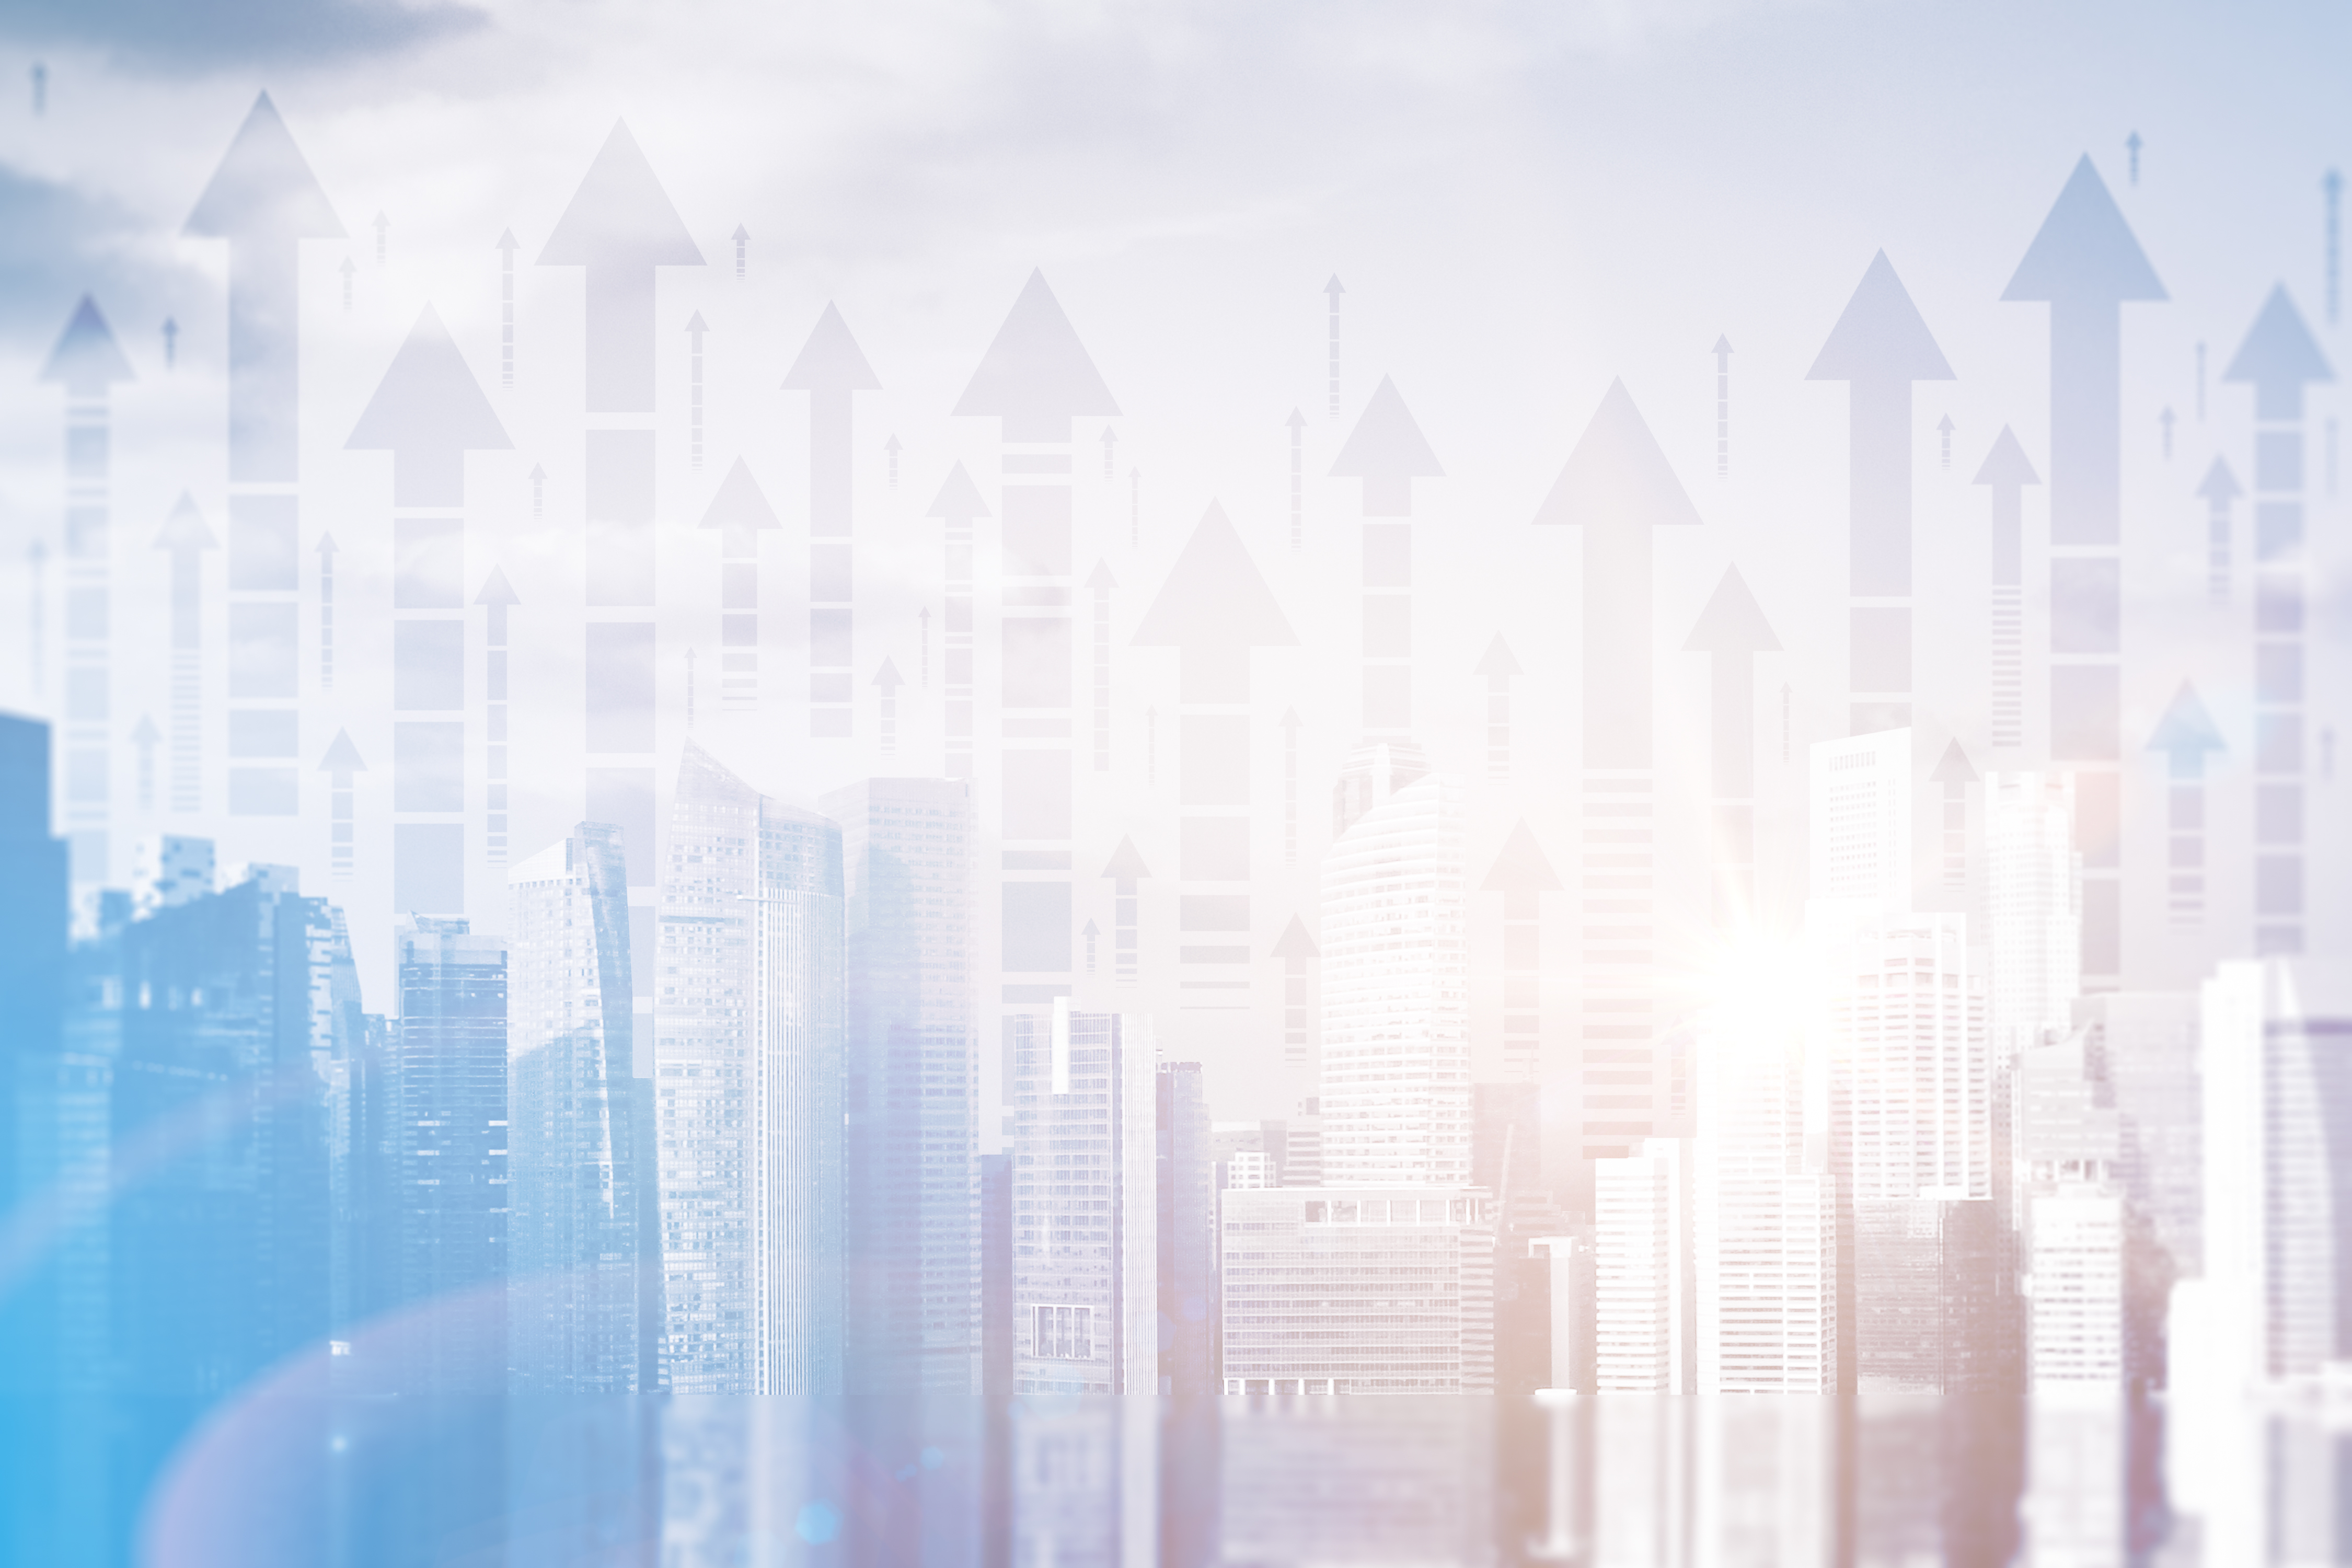 Abstract city with upward arrows and daylight